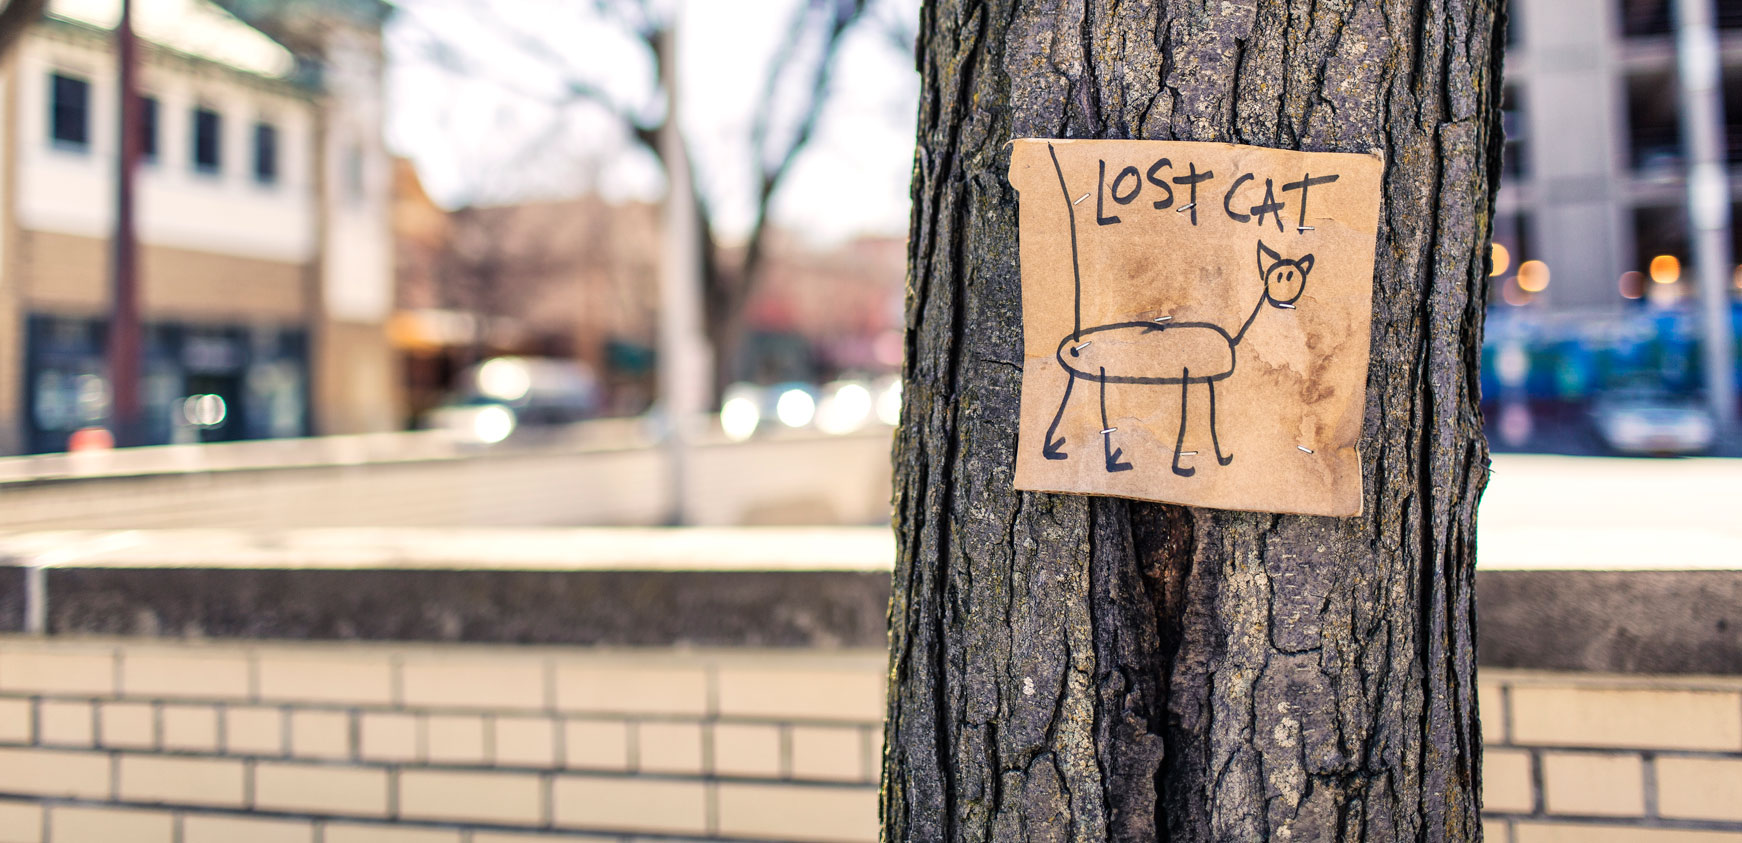 lost cat poster on tree